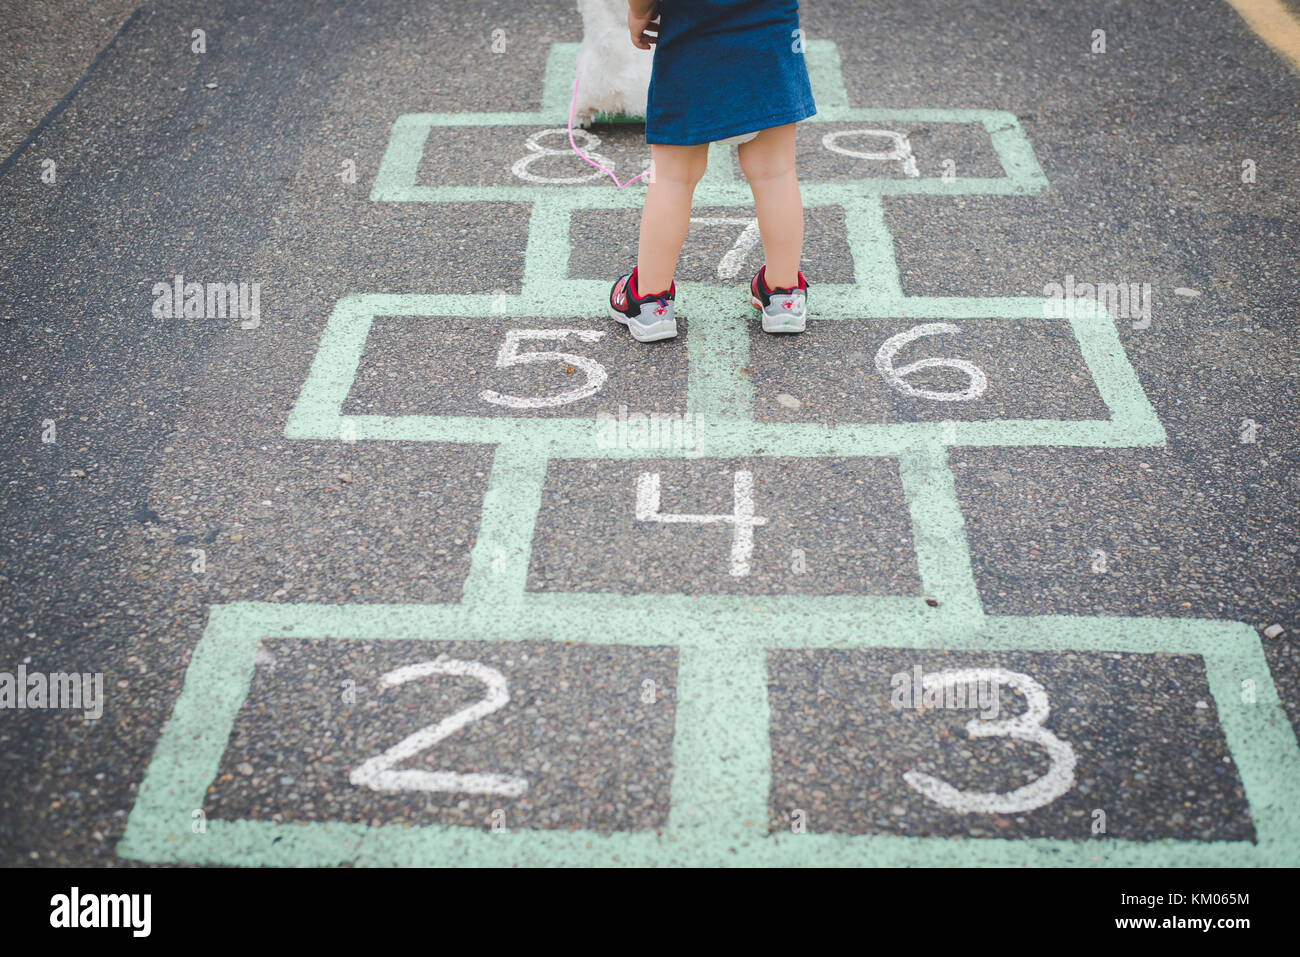 A child stands on a hopscotch, child game, board in a parking lot. - Stock Image